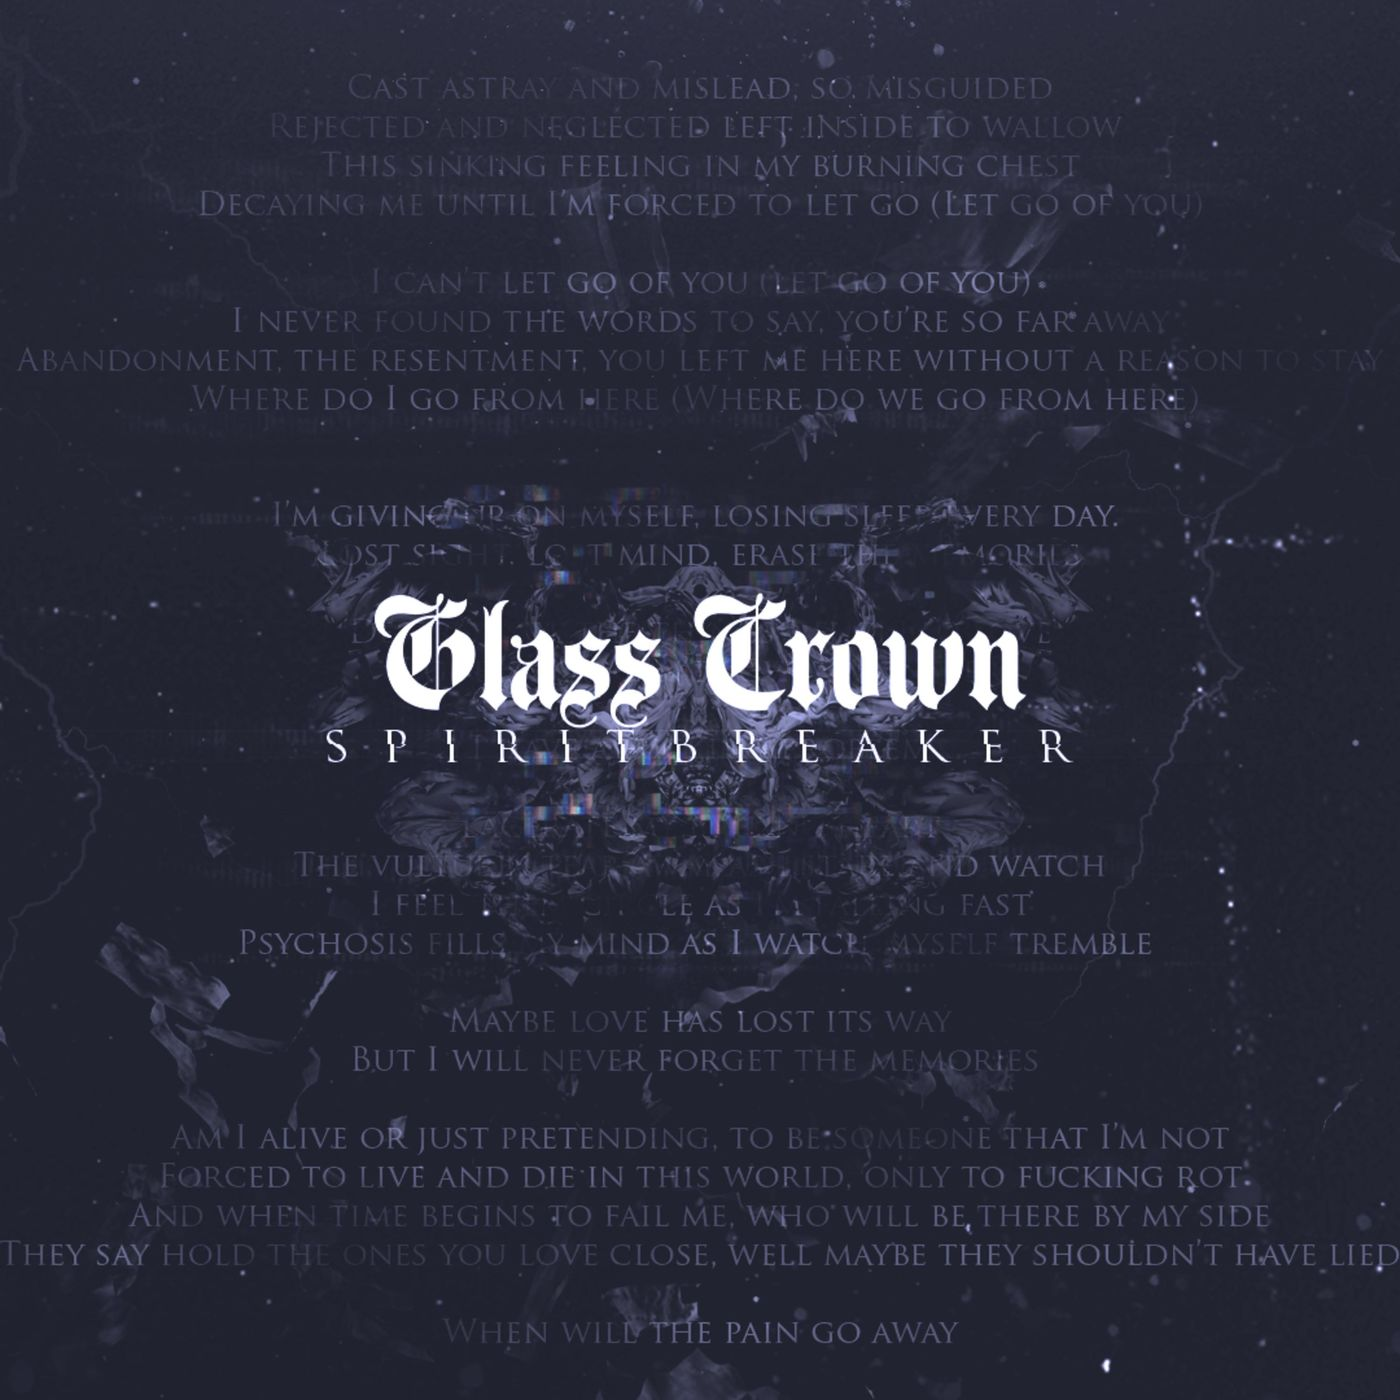 Glass Crown - Spiritbreaker [single] (2020)